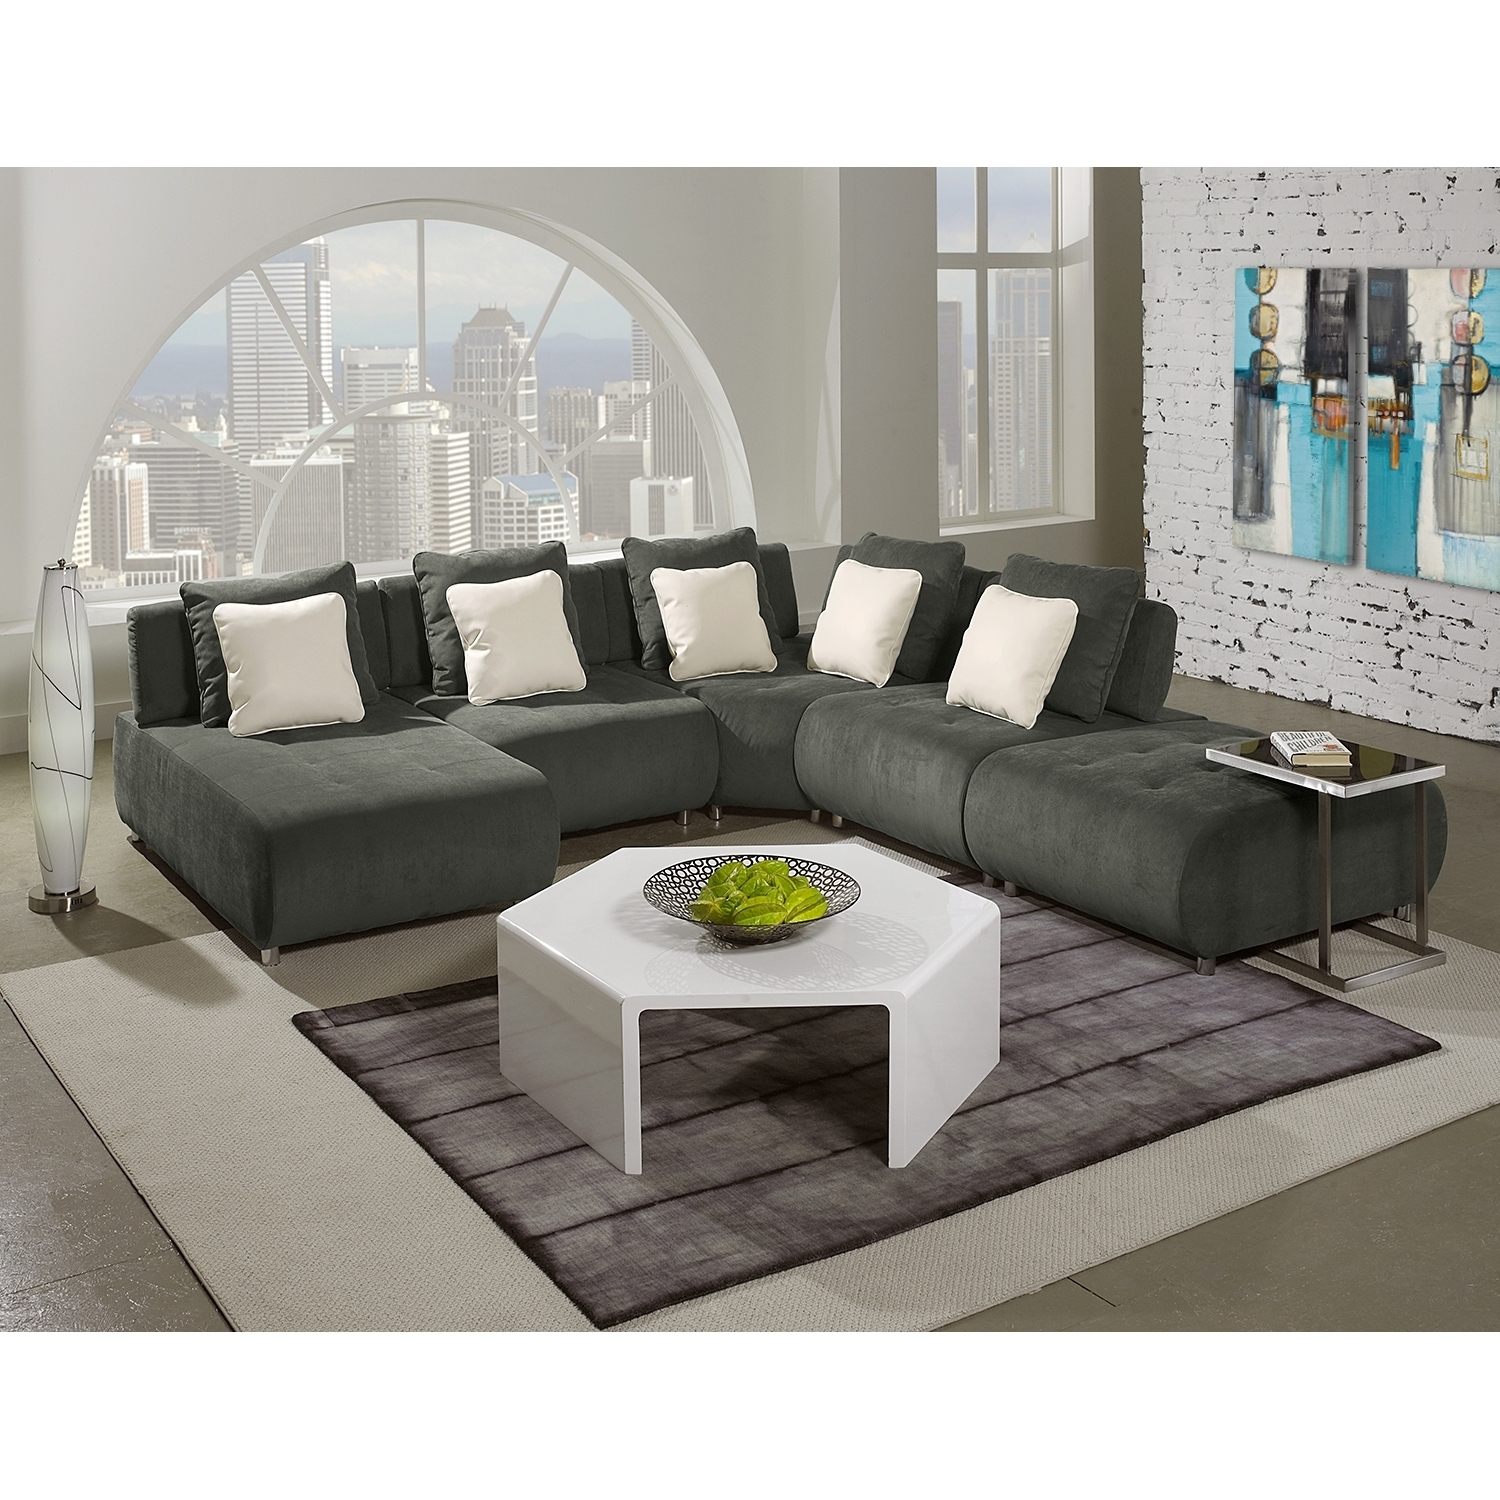 Amazing Modular Sectional Sofa For Small Living Room Ideas With U F Throughout Sectional Sofas For Small Living Rooms (View 5 of 10)